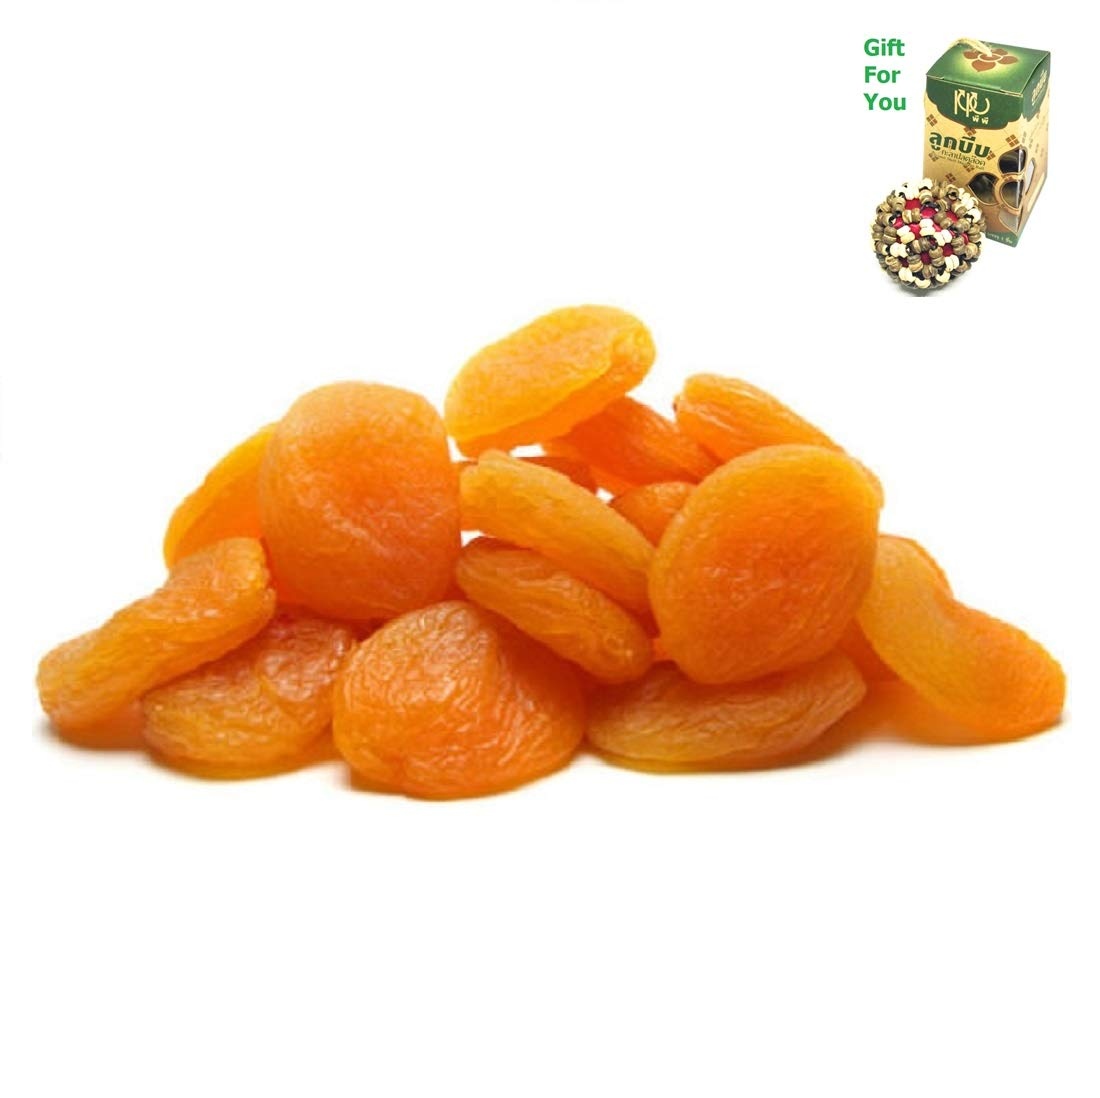 Dried Turkish Apricots (25 LBS) By SpiritOne + GIFT Coconut Shell Massage Ball